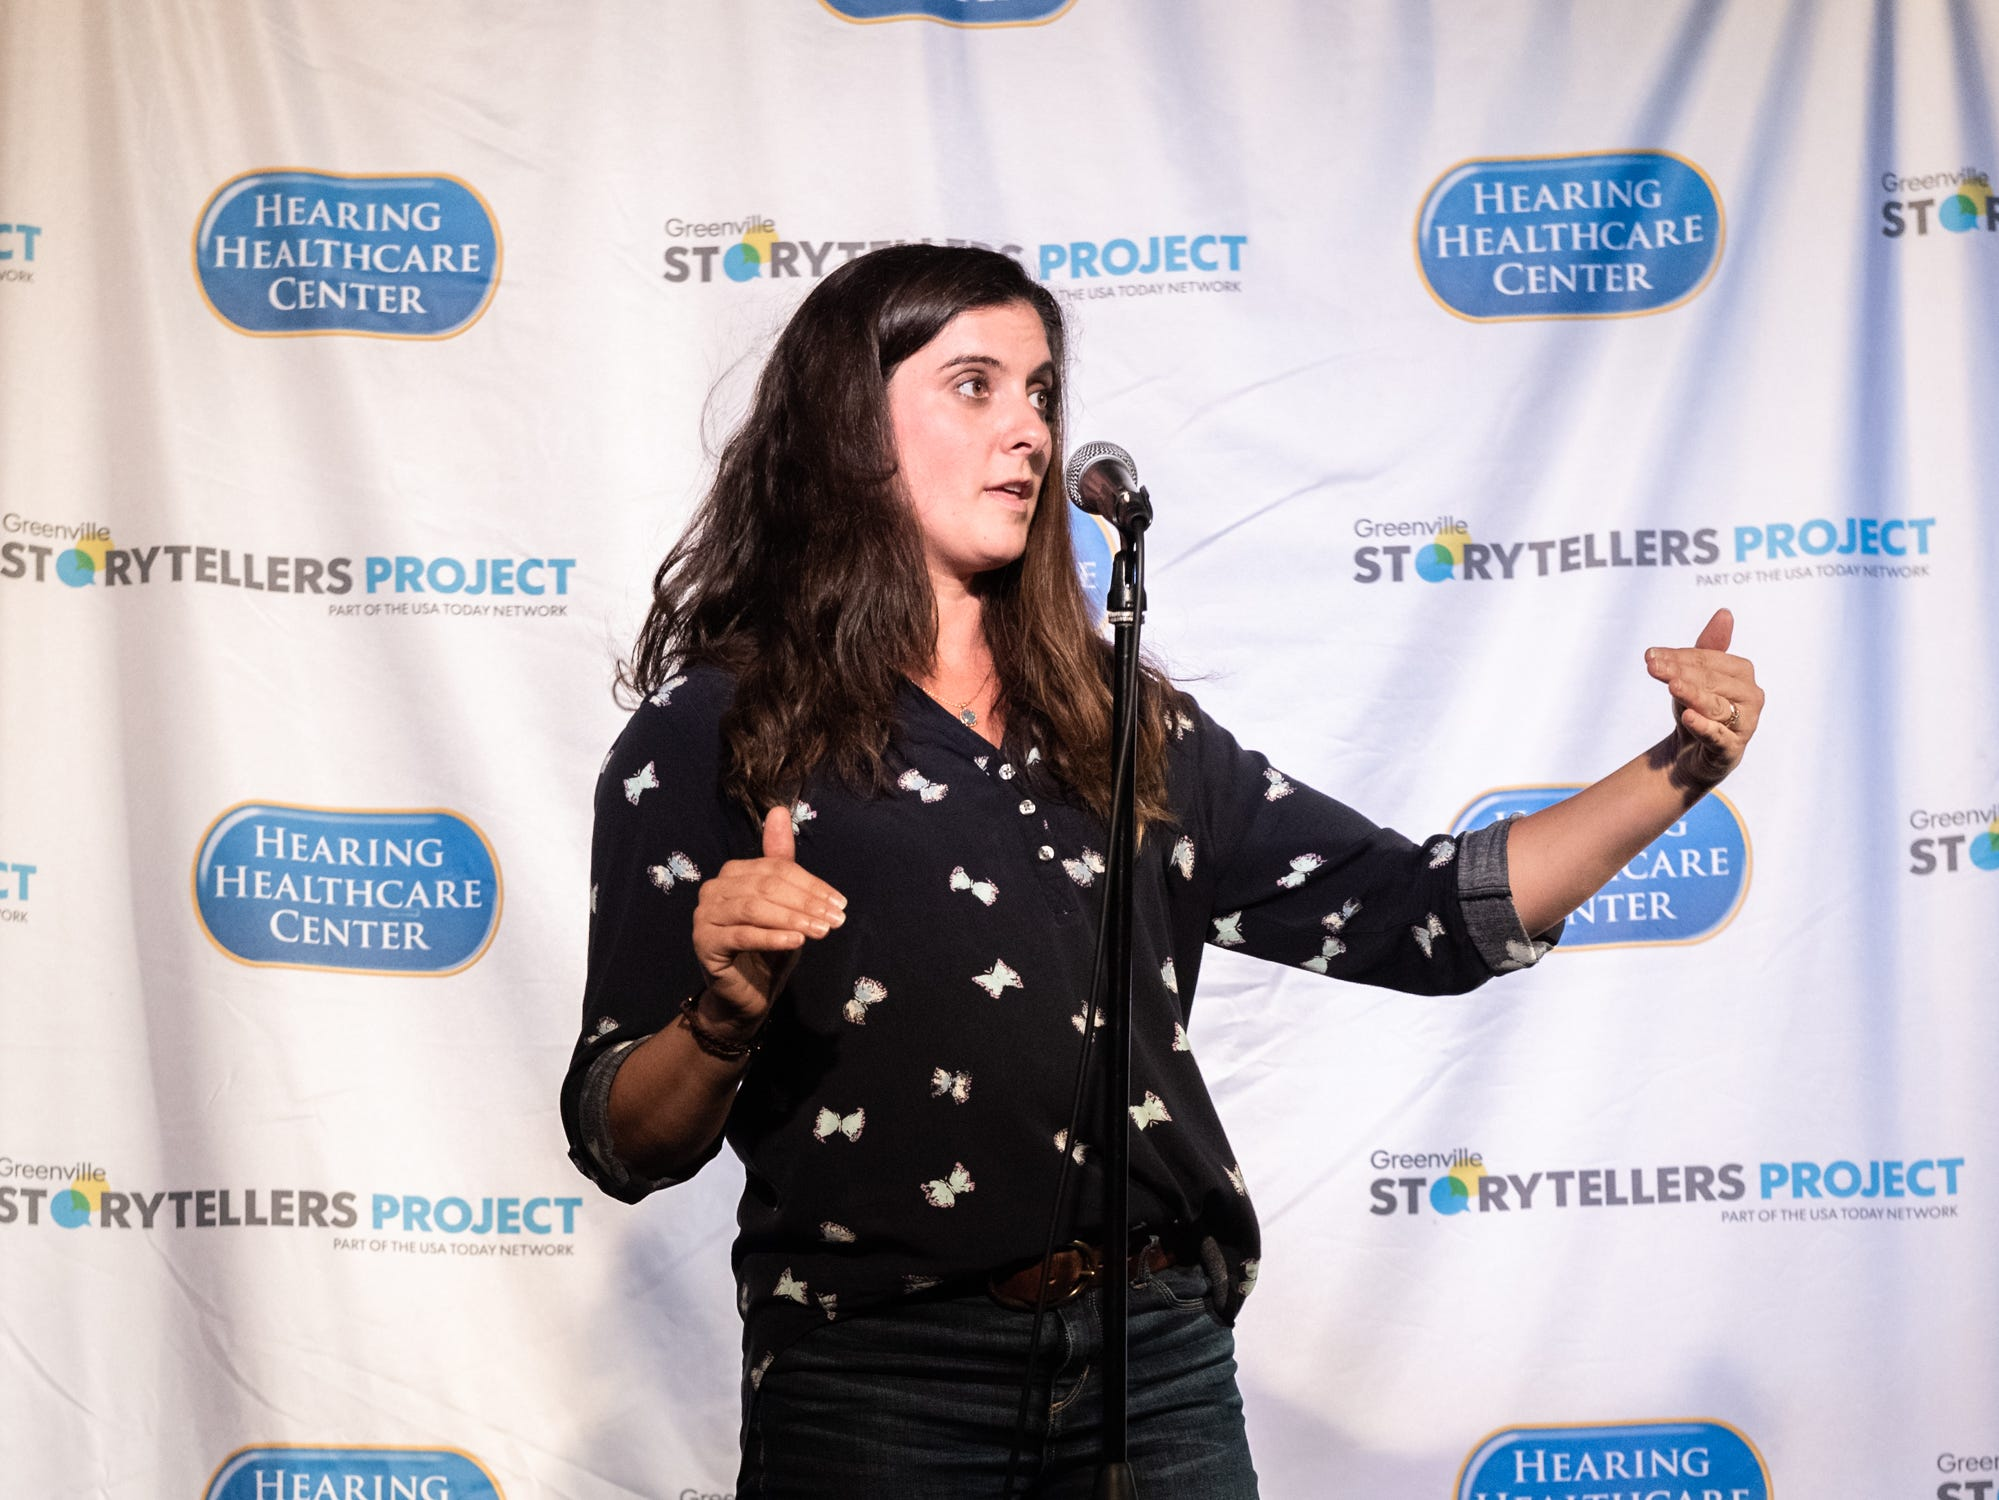 Whitney Poitevint, a real estate agent, at the Greenville Storytellers Project event at the Comedy Zone Tuesday, May 14, 2019.